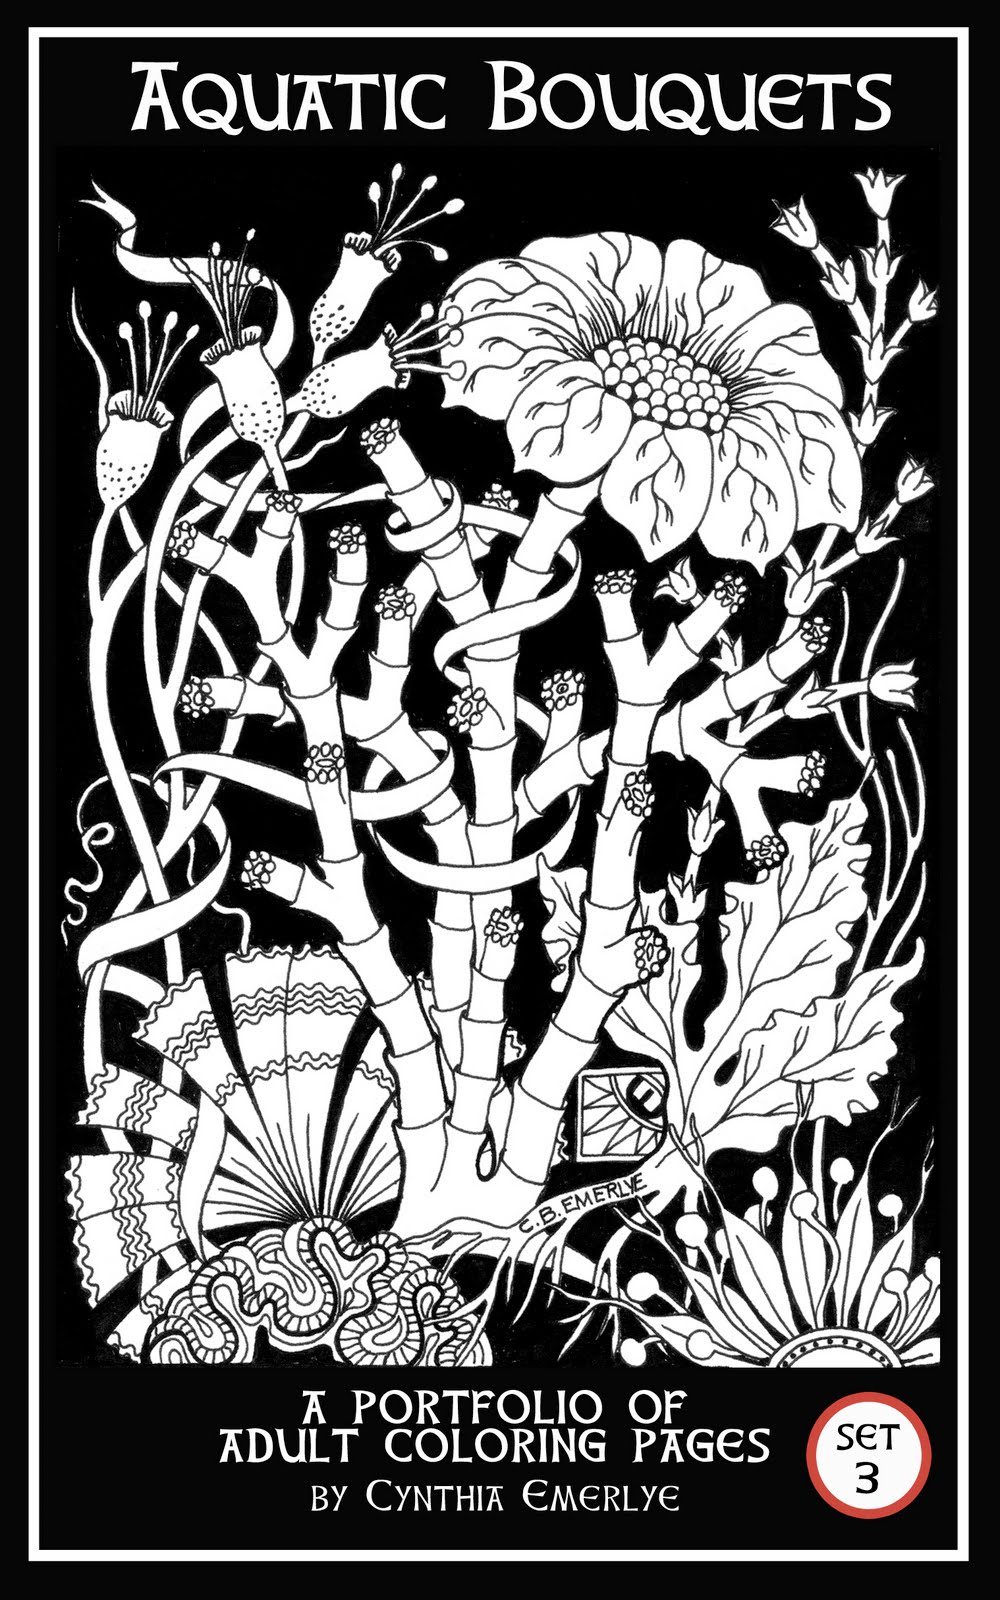 Simple Adult coloring page for kids